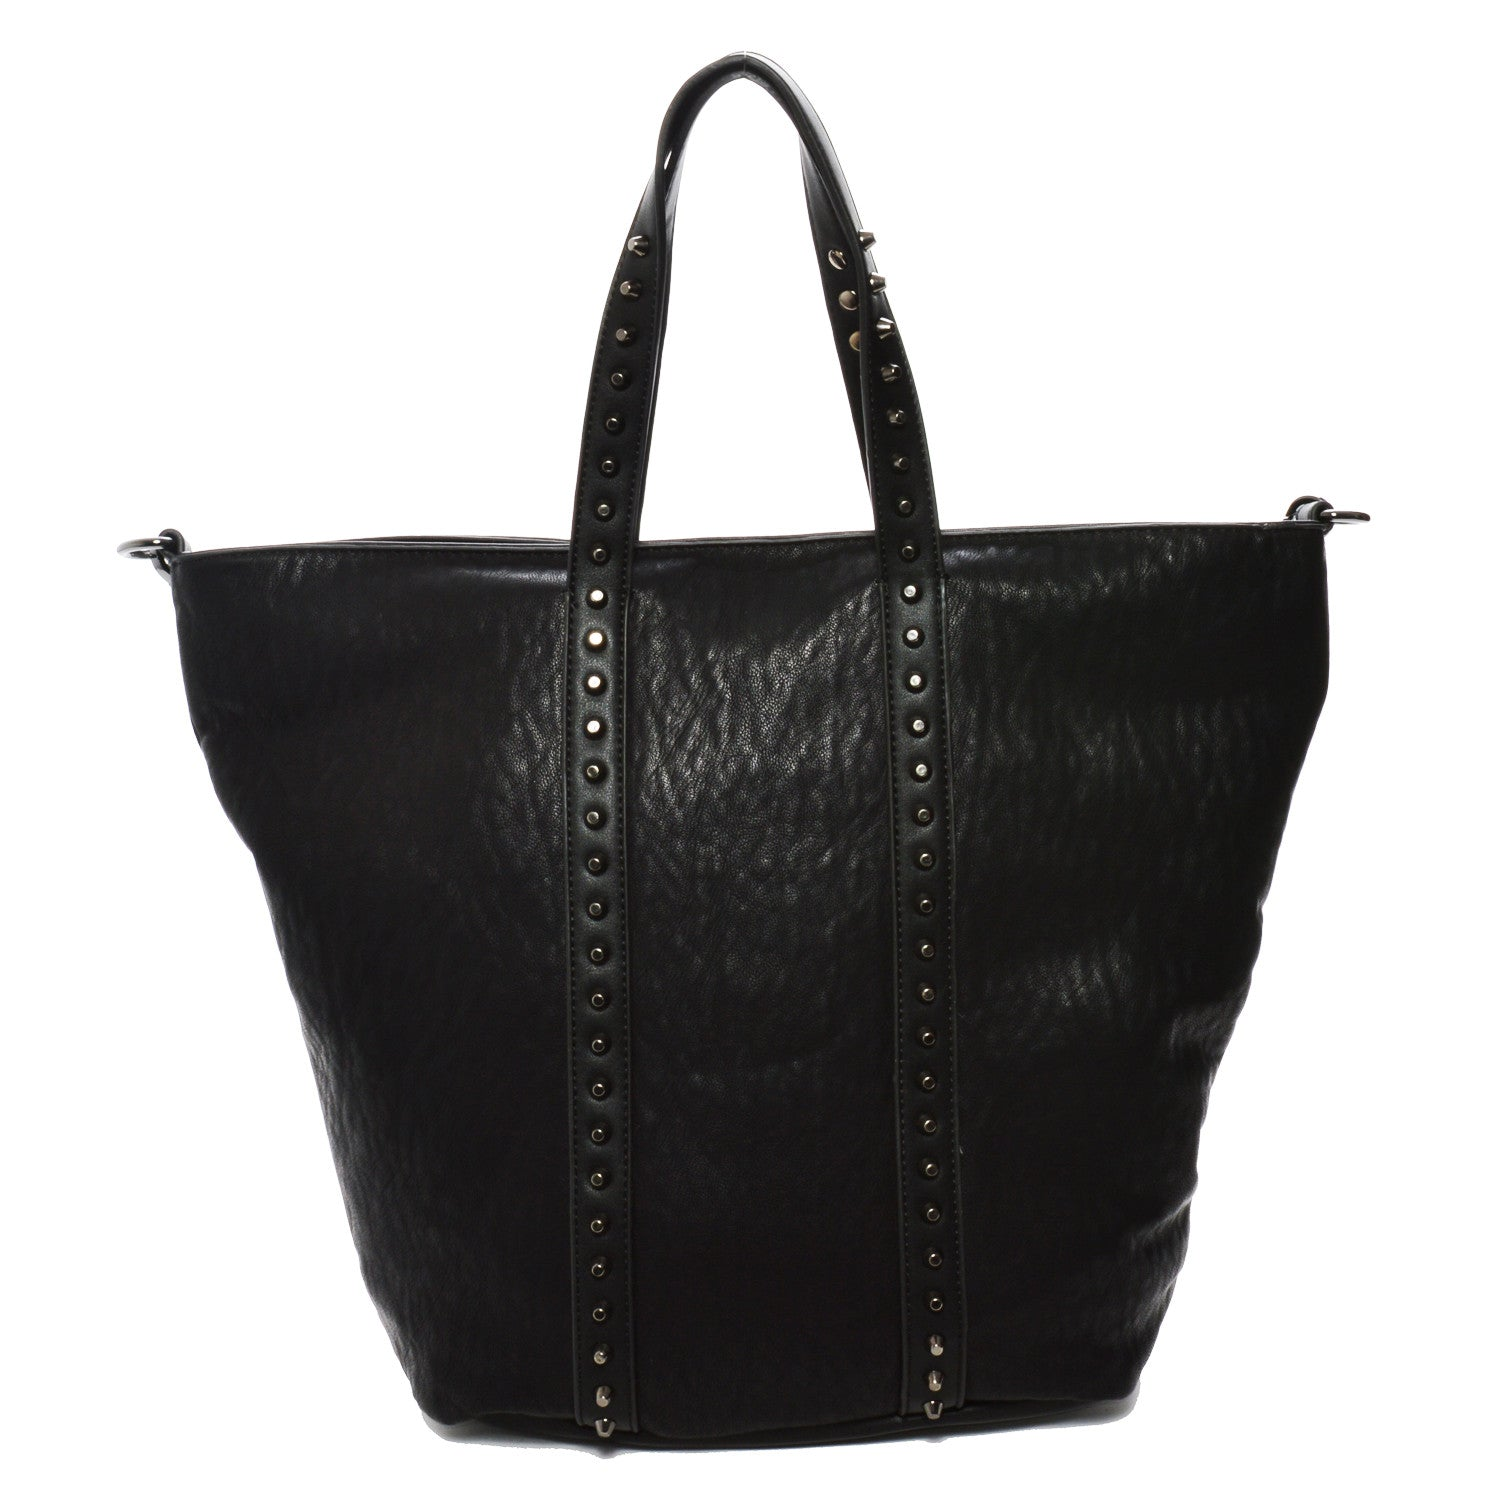 Mechaly Women's Holly Black Vegan Leather Tote...